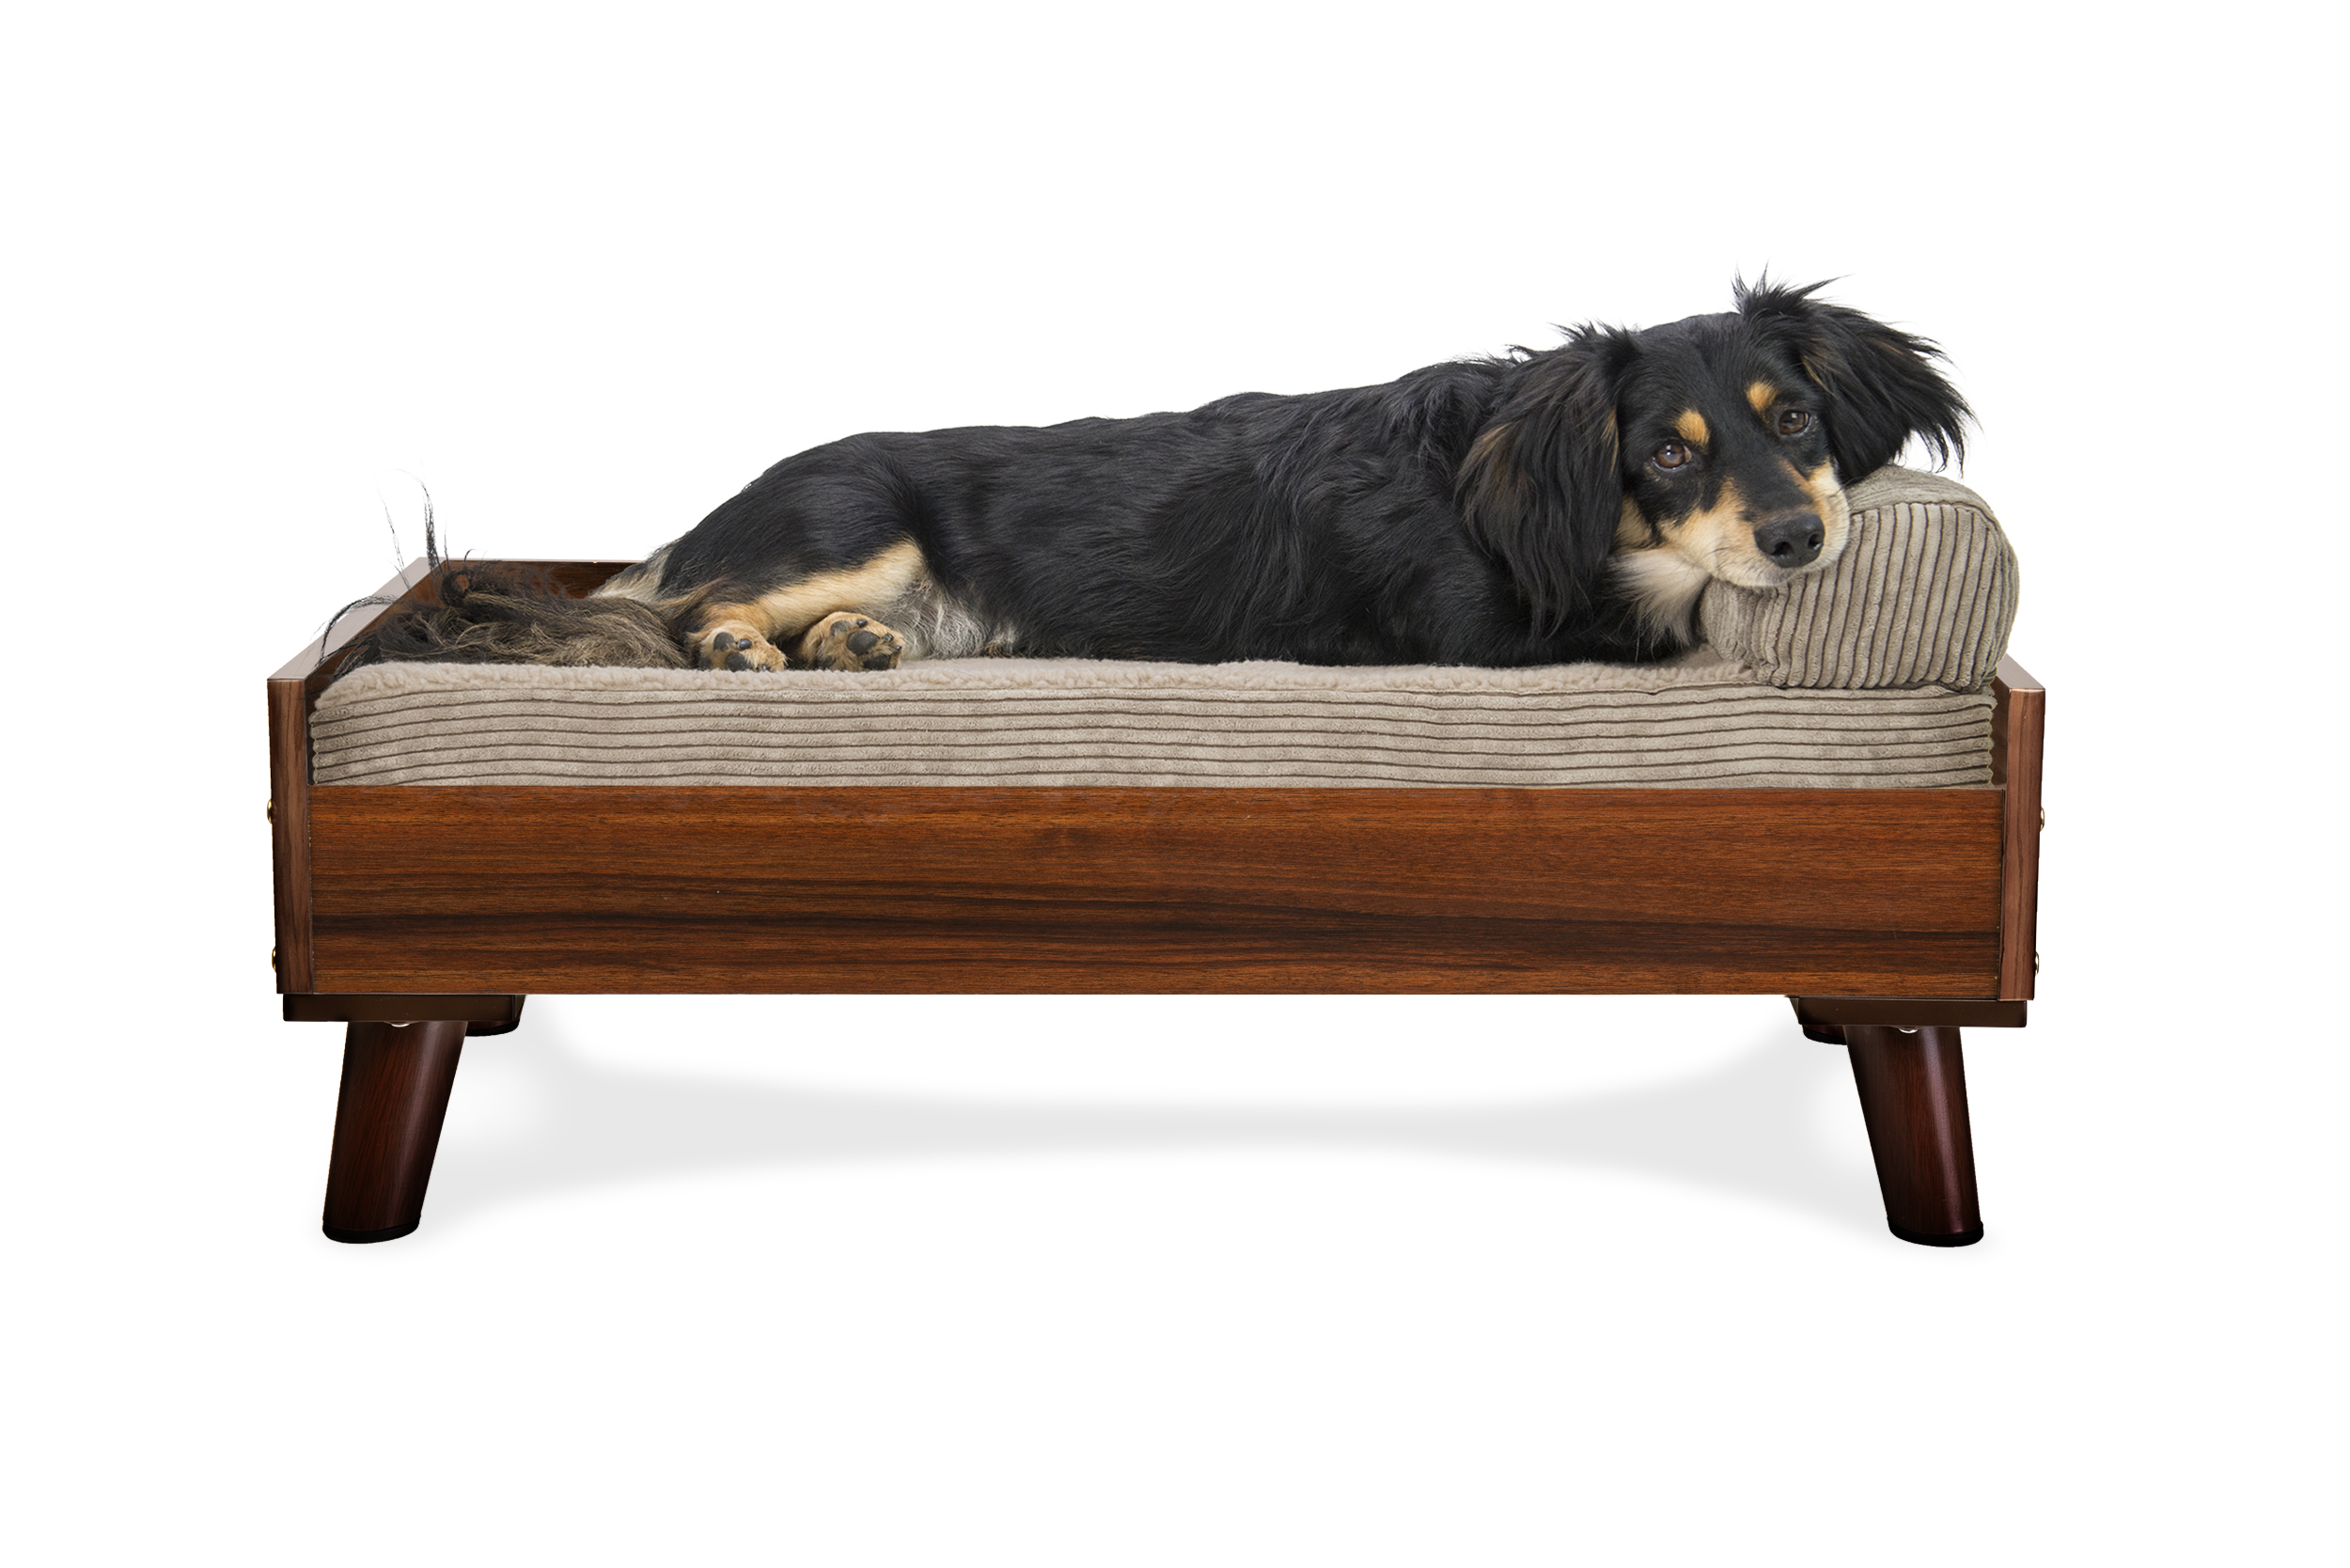 Elevate your pets comfort with this furhaven modern look pet bed frame whatever color you choose you and your pet are sure to love